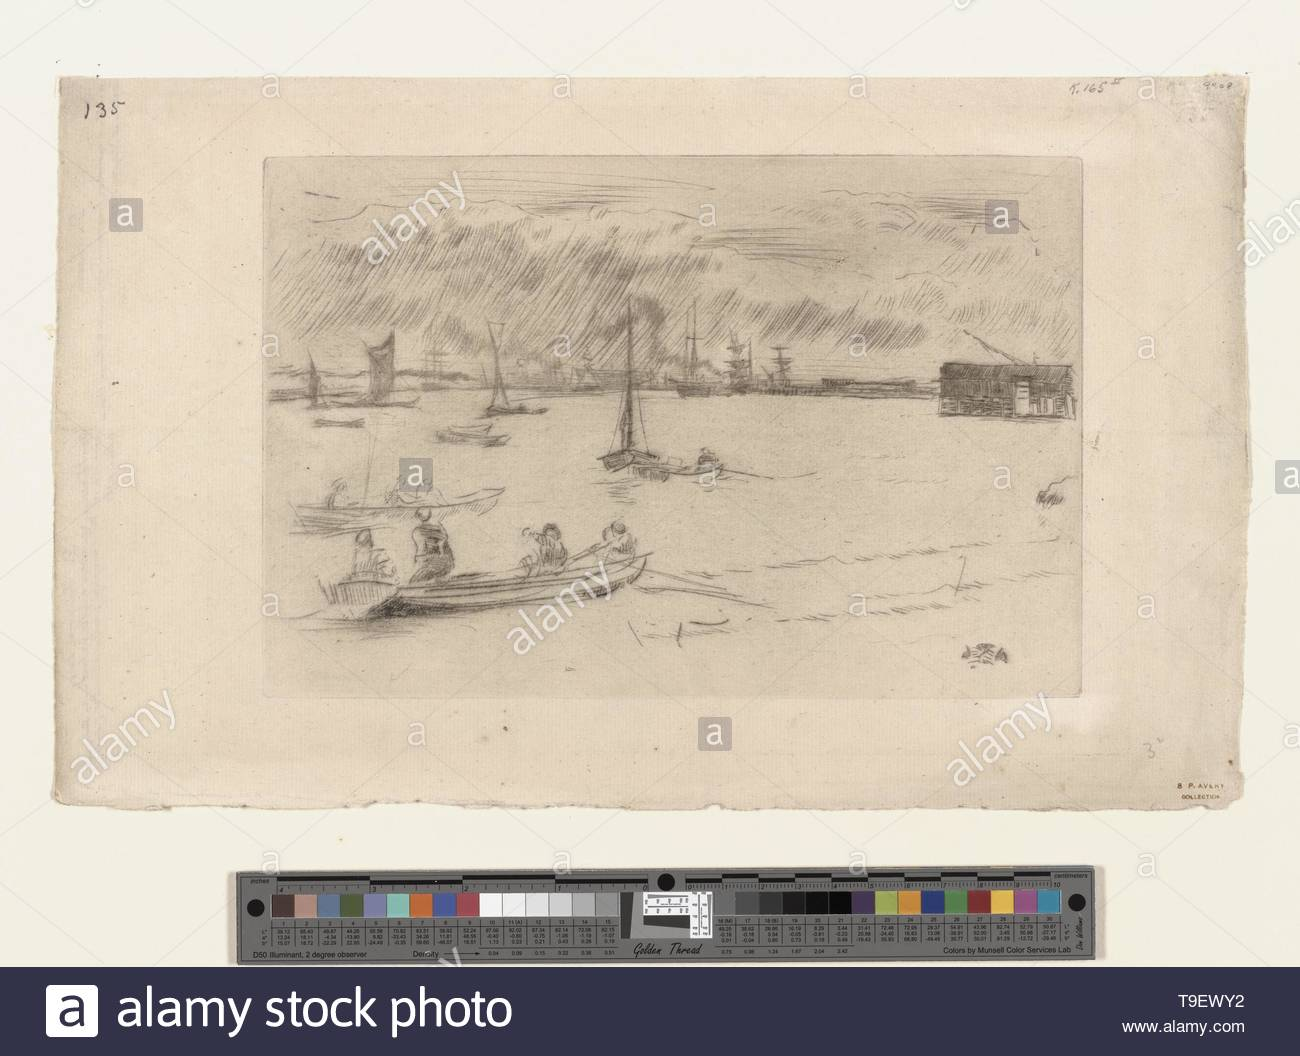 Whistler,JamesMcNeill(1834-1903)-The Thames towards Erith - Stock Image